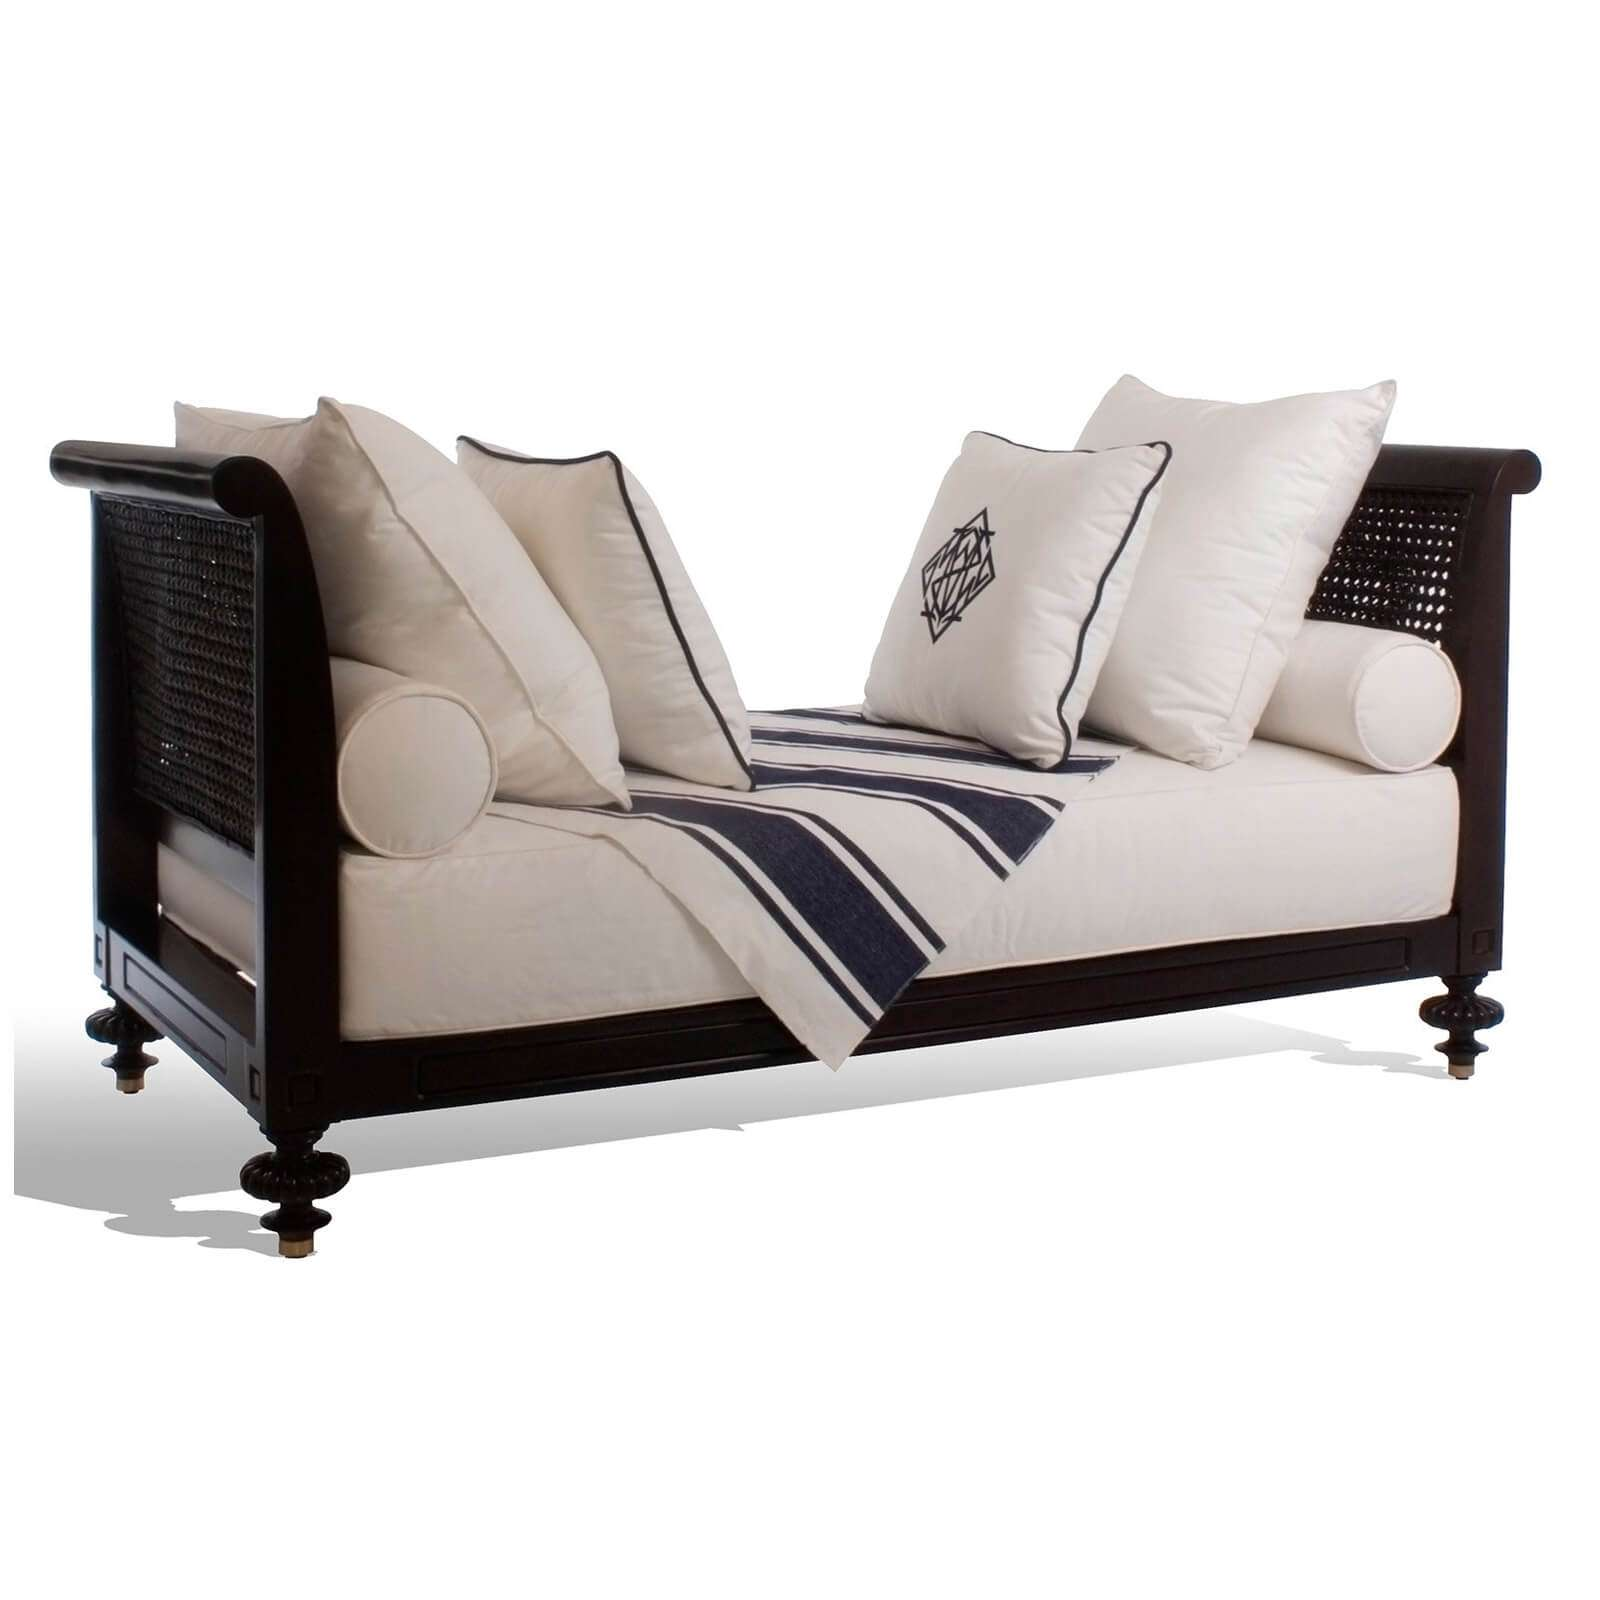 MADRAS DAYBED - STUART MEMBERY HOME COLLECTION